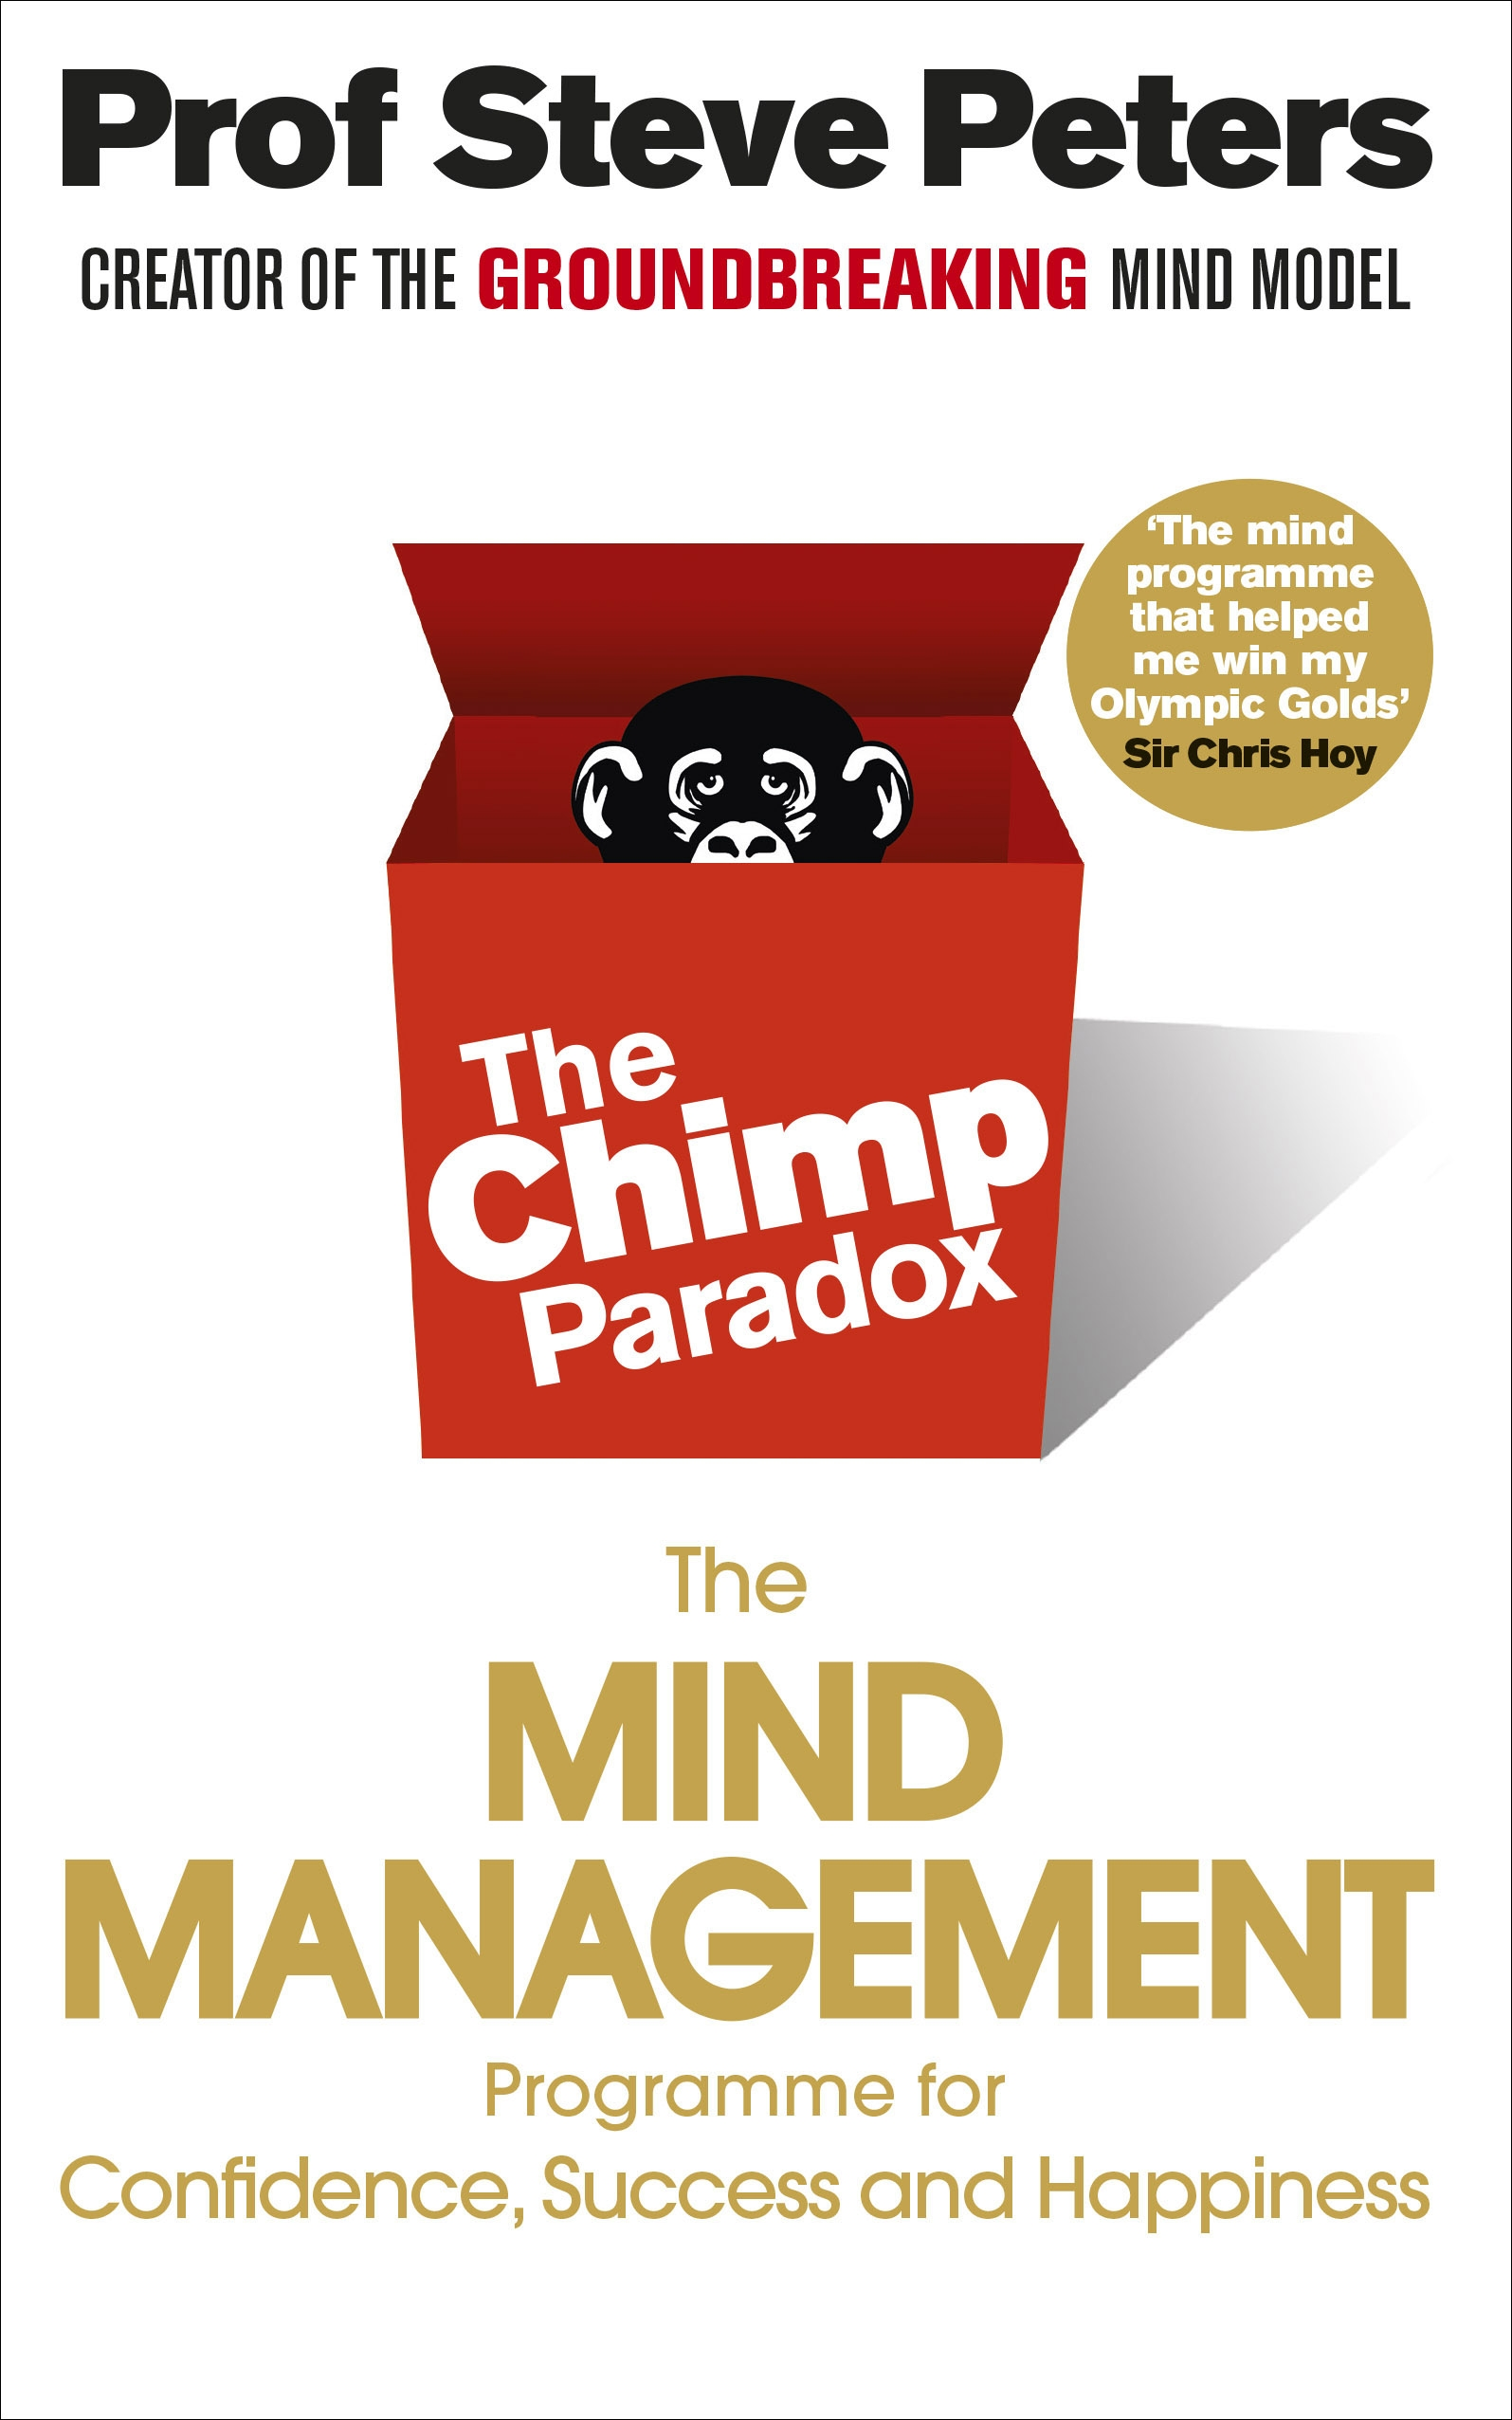 The Chimp Paradox: The Acclaimed Mind Management Programme to Help You Achieve Success, Confidence and Happiness by Steve Peters, ISBN: 9780091935580